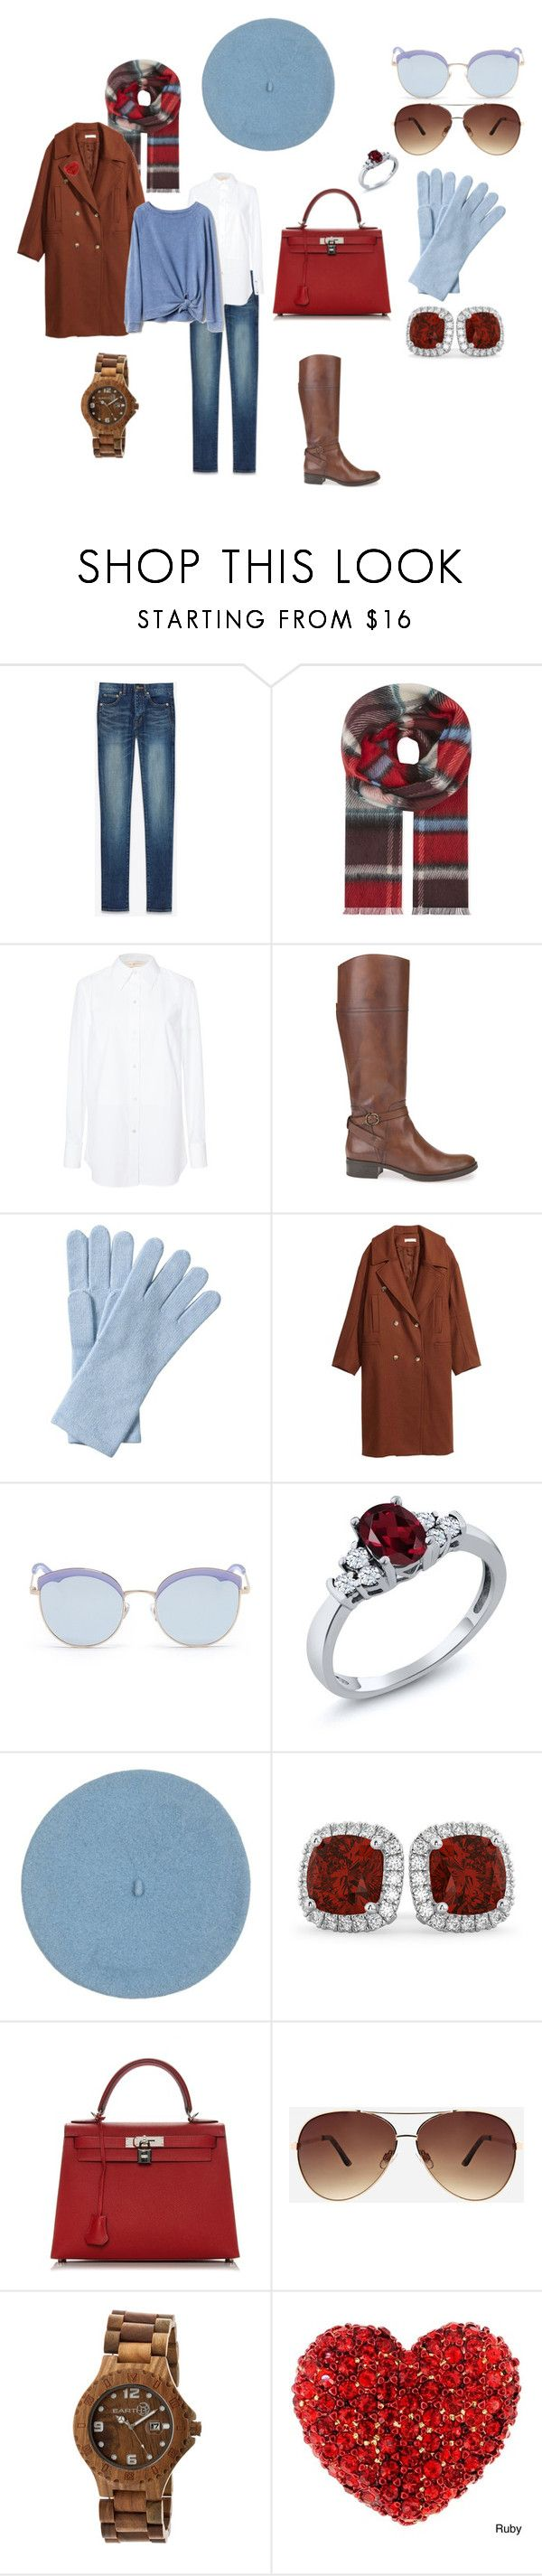 """Зима. Натуральный вектор."" by keltman on Polyvore featuring мода, Yves Saint Laurent, Burberry, Tory Burch, Geox, Pure Collection, Stephane + Christian, Allurez, Hermès и Ashley Stewart"